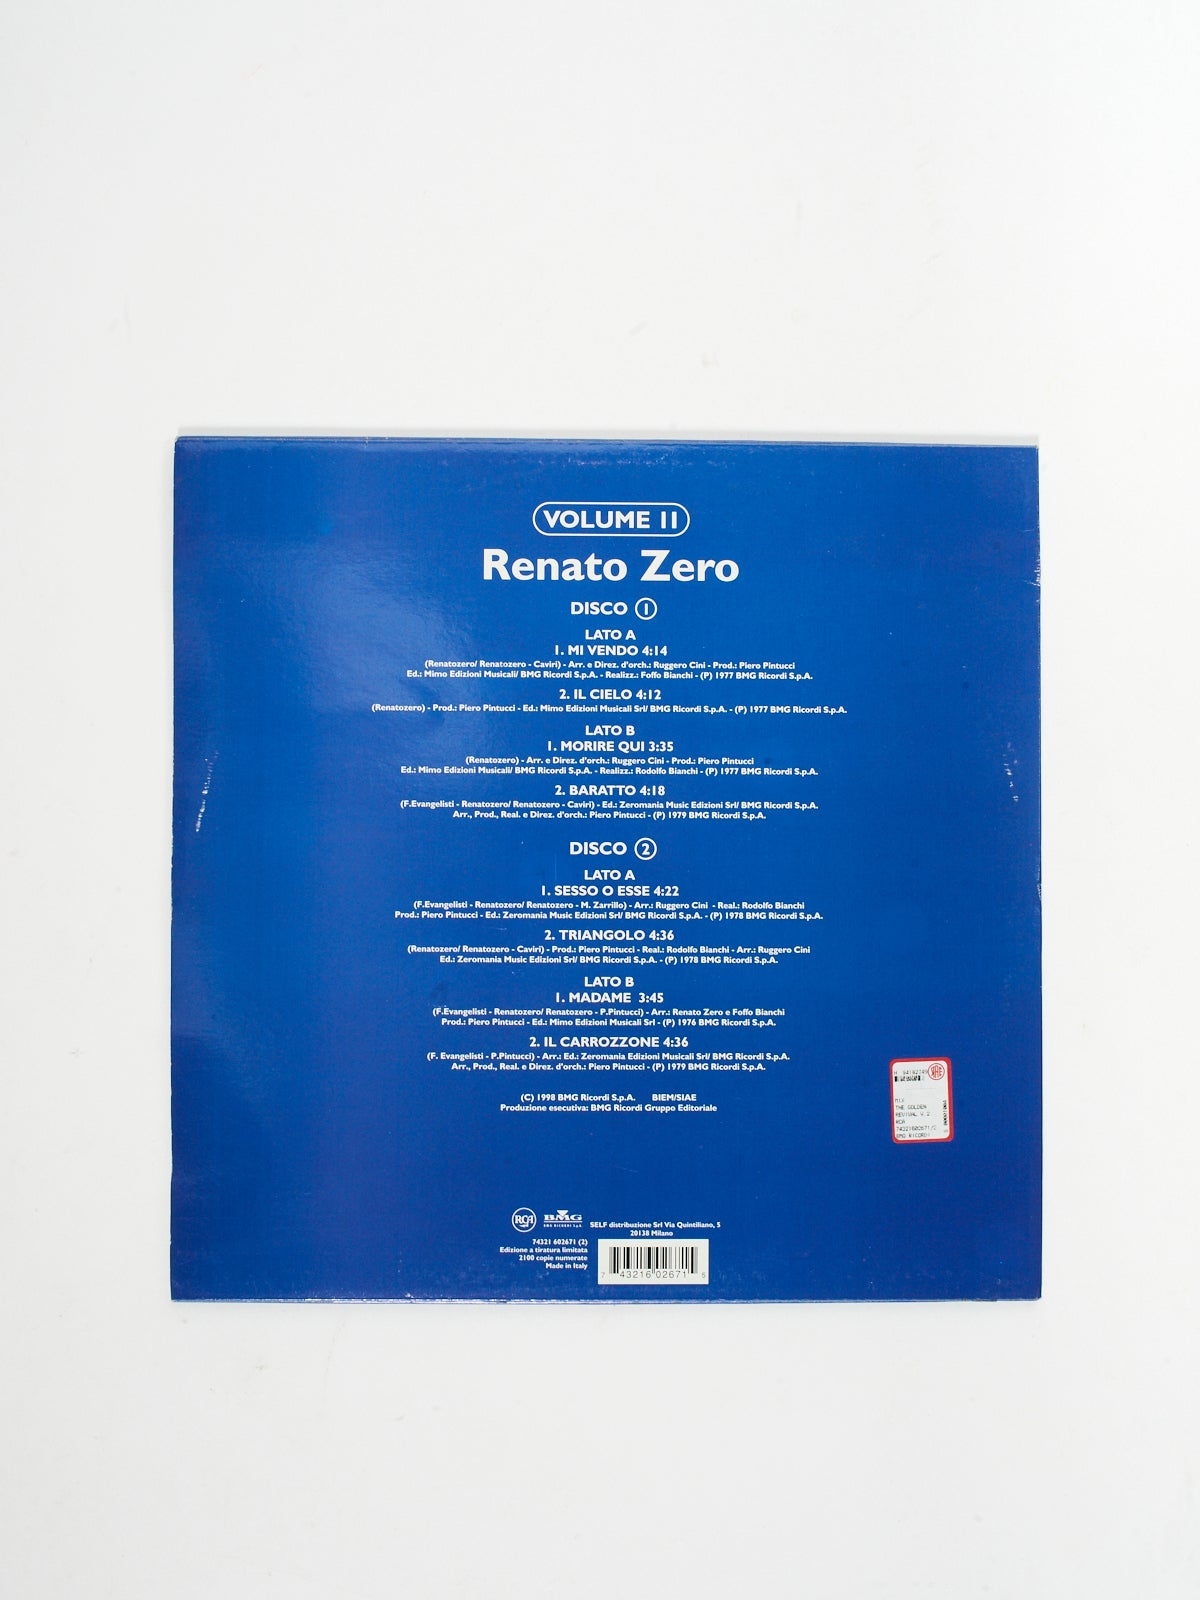 RENATO ZERO - THE GOLDEN REVIVAL ORIGINAL VINYL